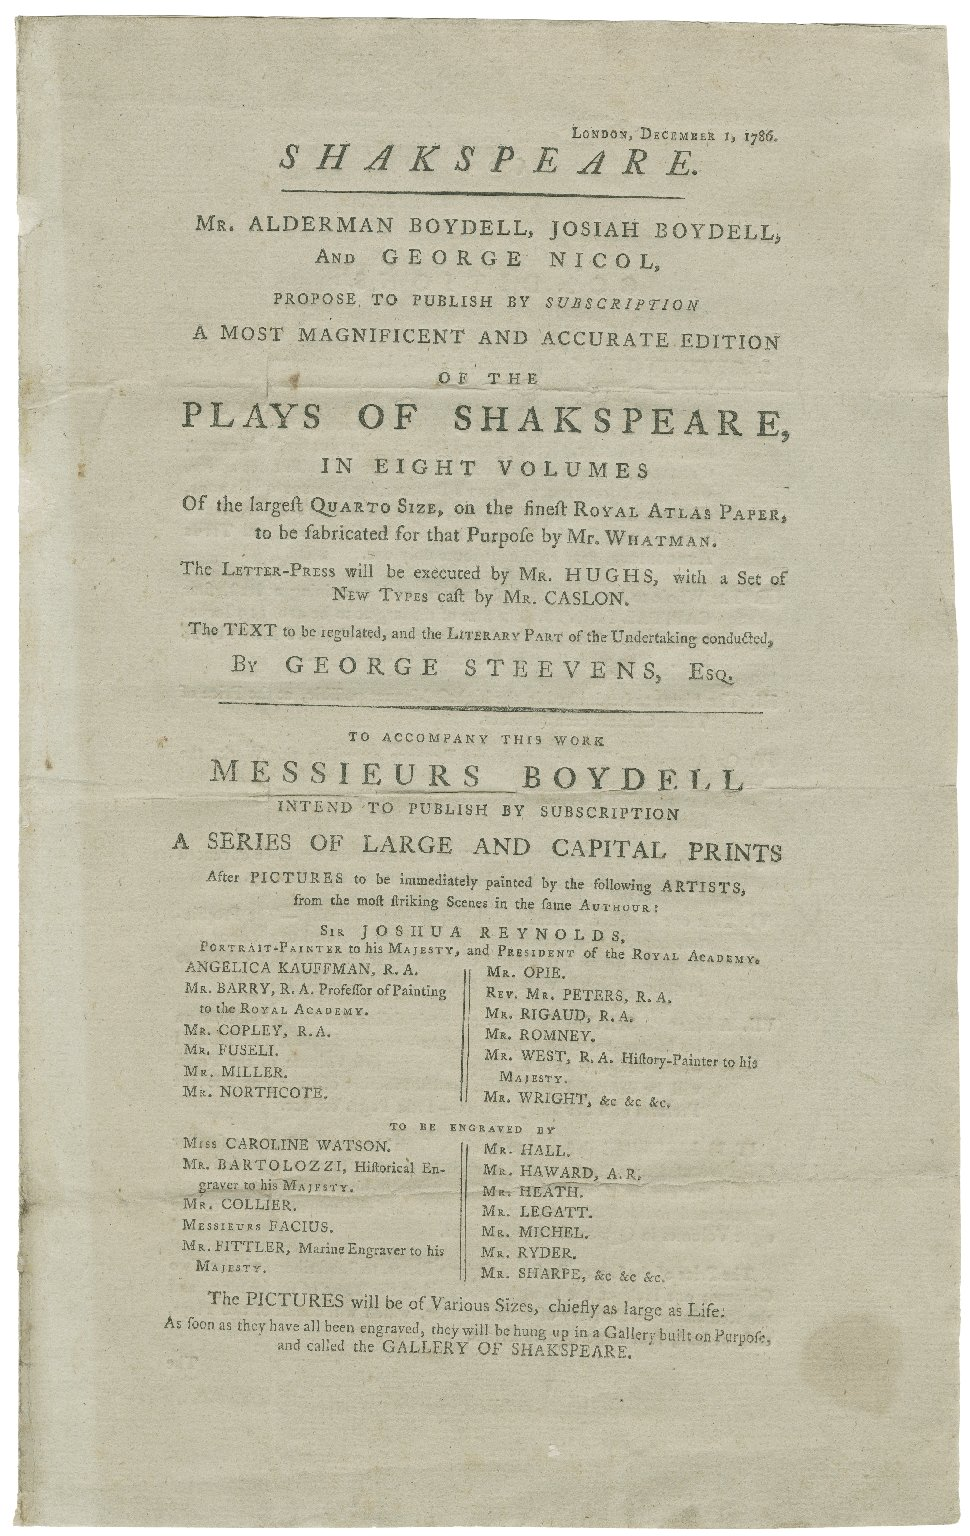 Mr. Alderman Boydell, Josiah Boydell, and George Nicol propose to publish by subscription a most magnificent and accurate edition of the Plays of Shakspeare